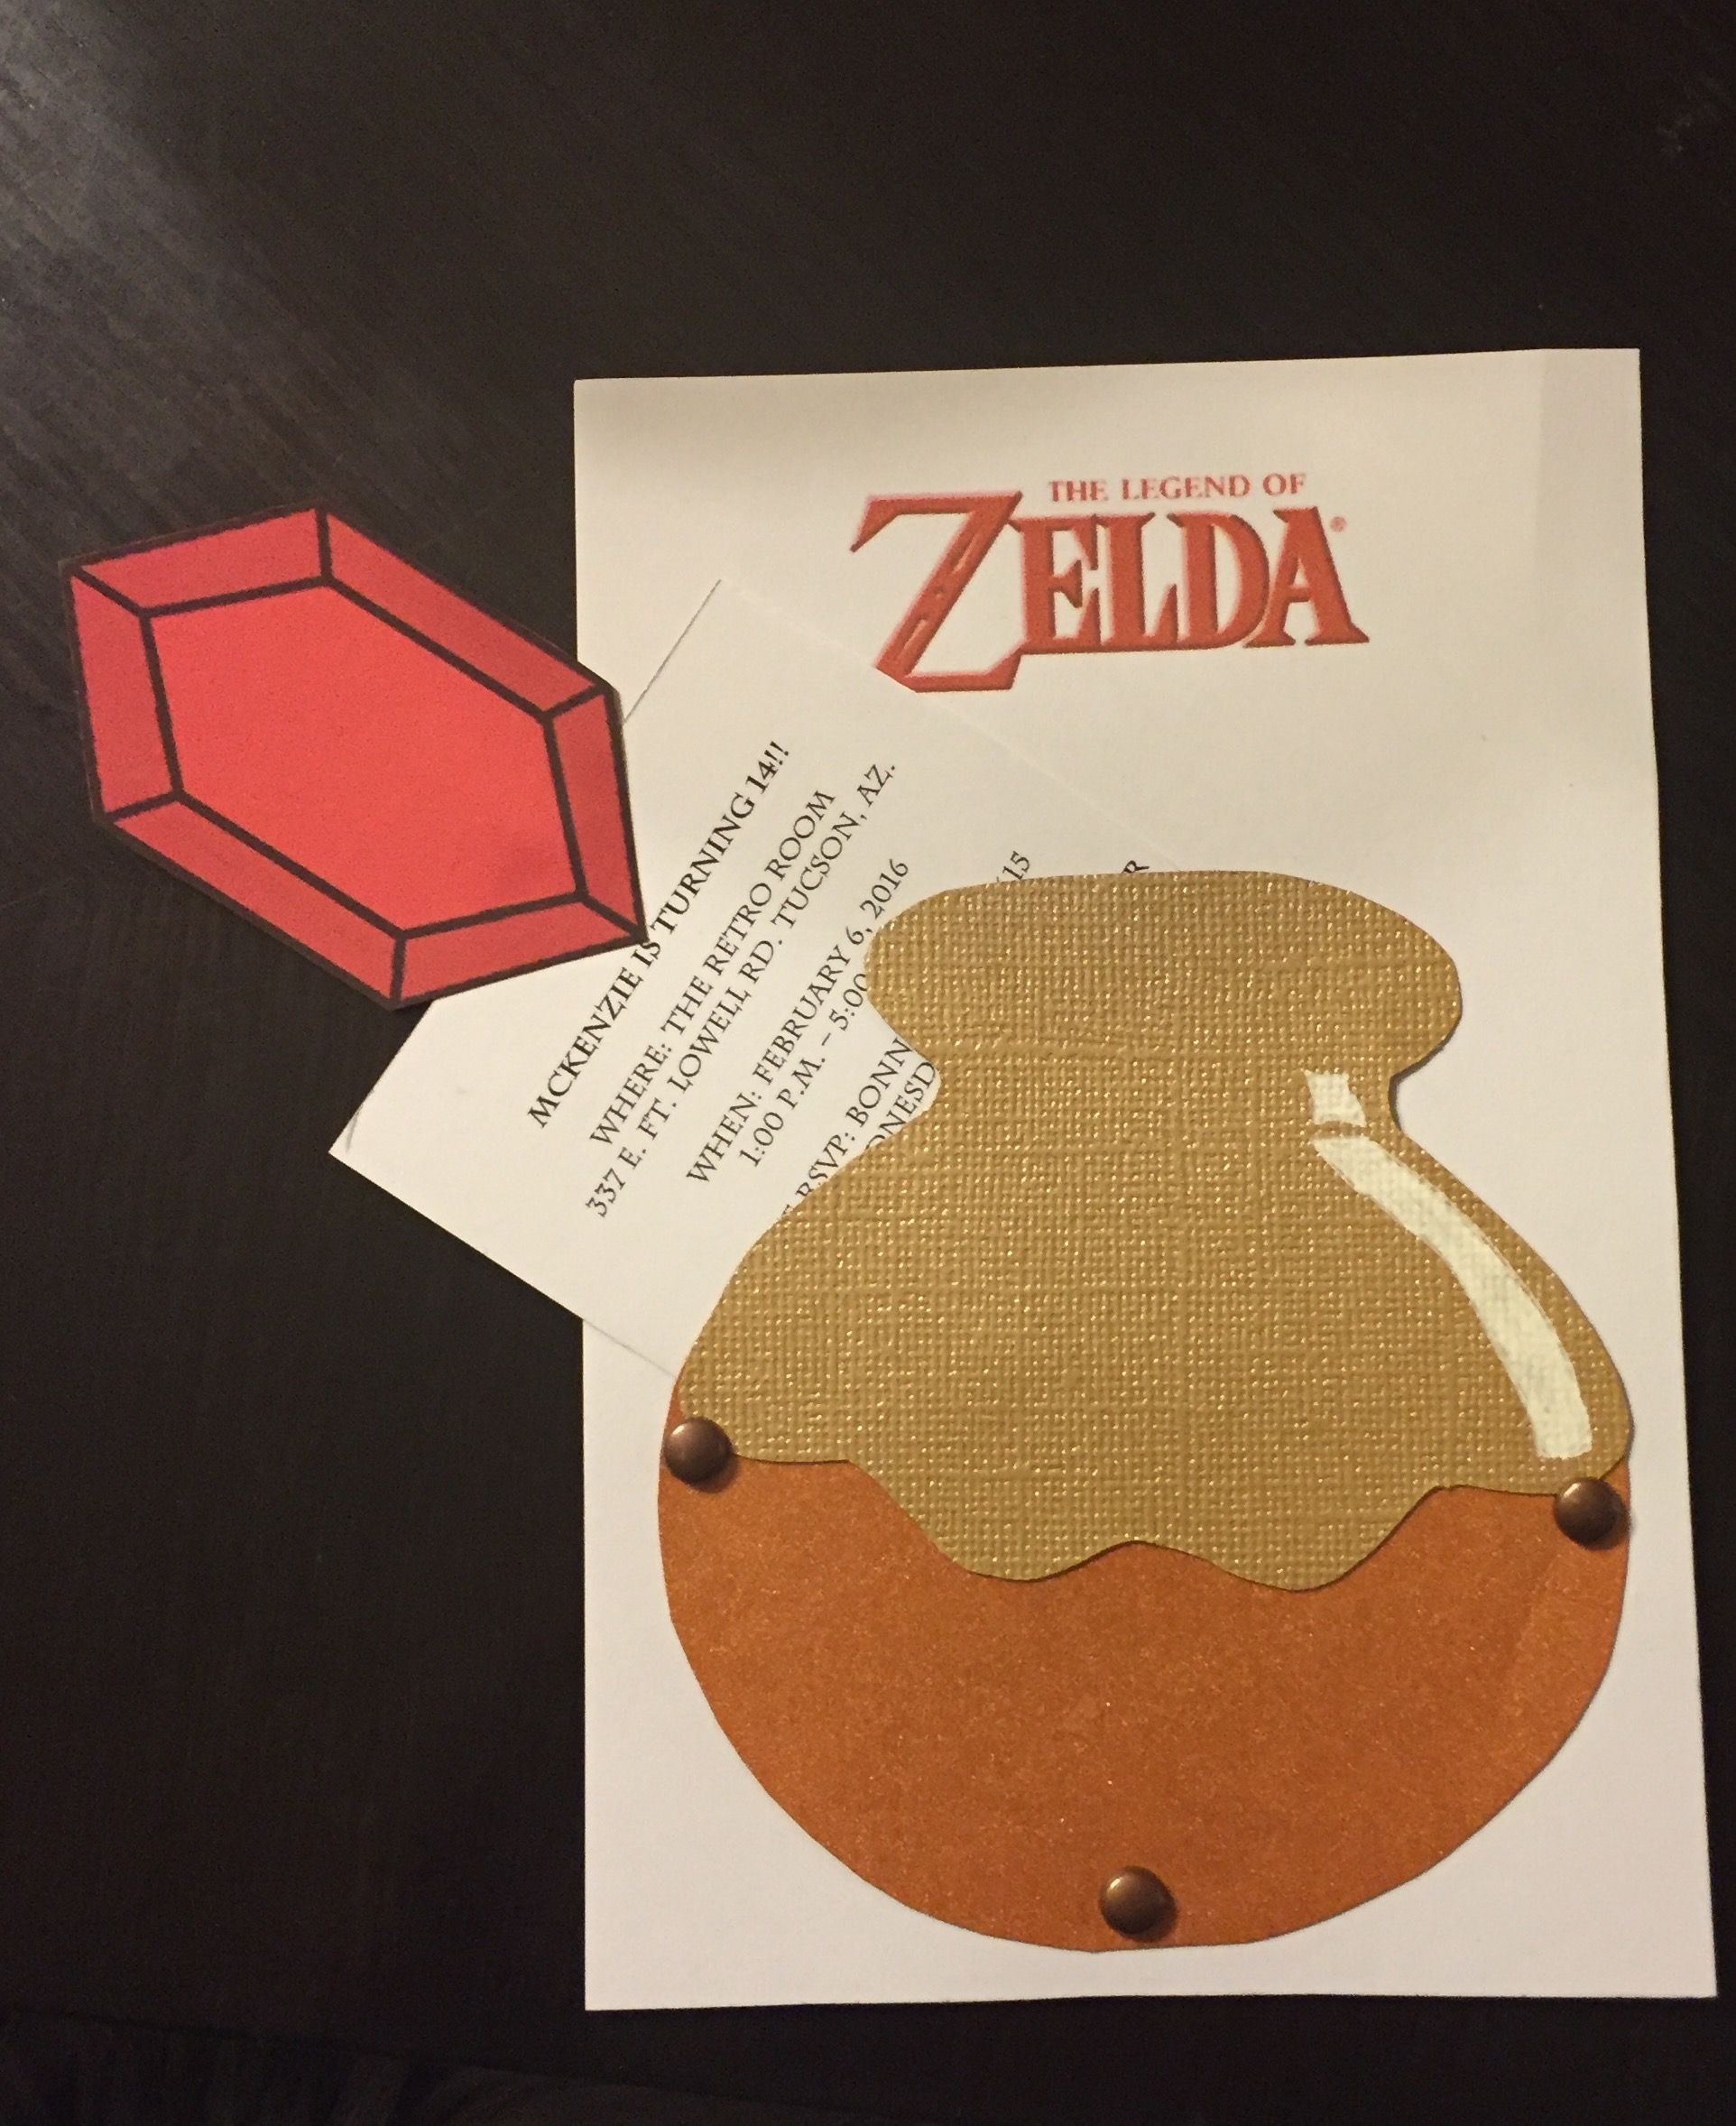 Legend of zelda birthday invitation decorations for Decoration zelda